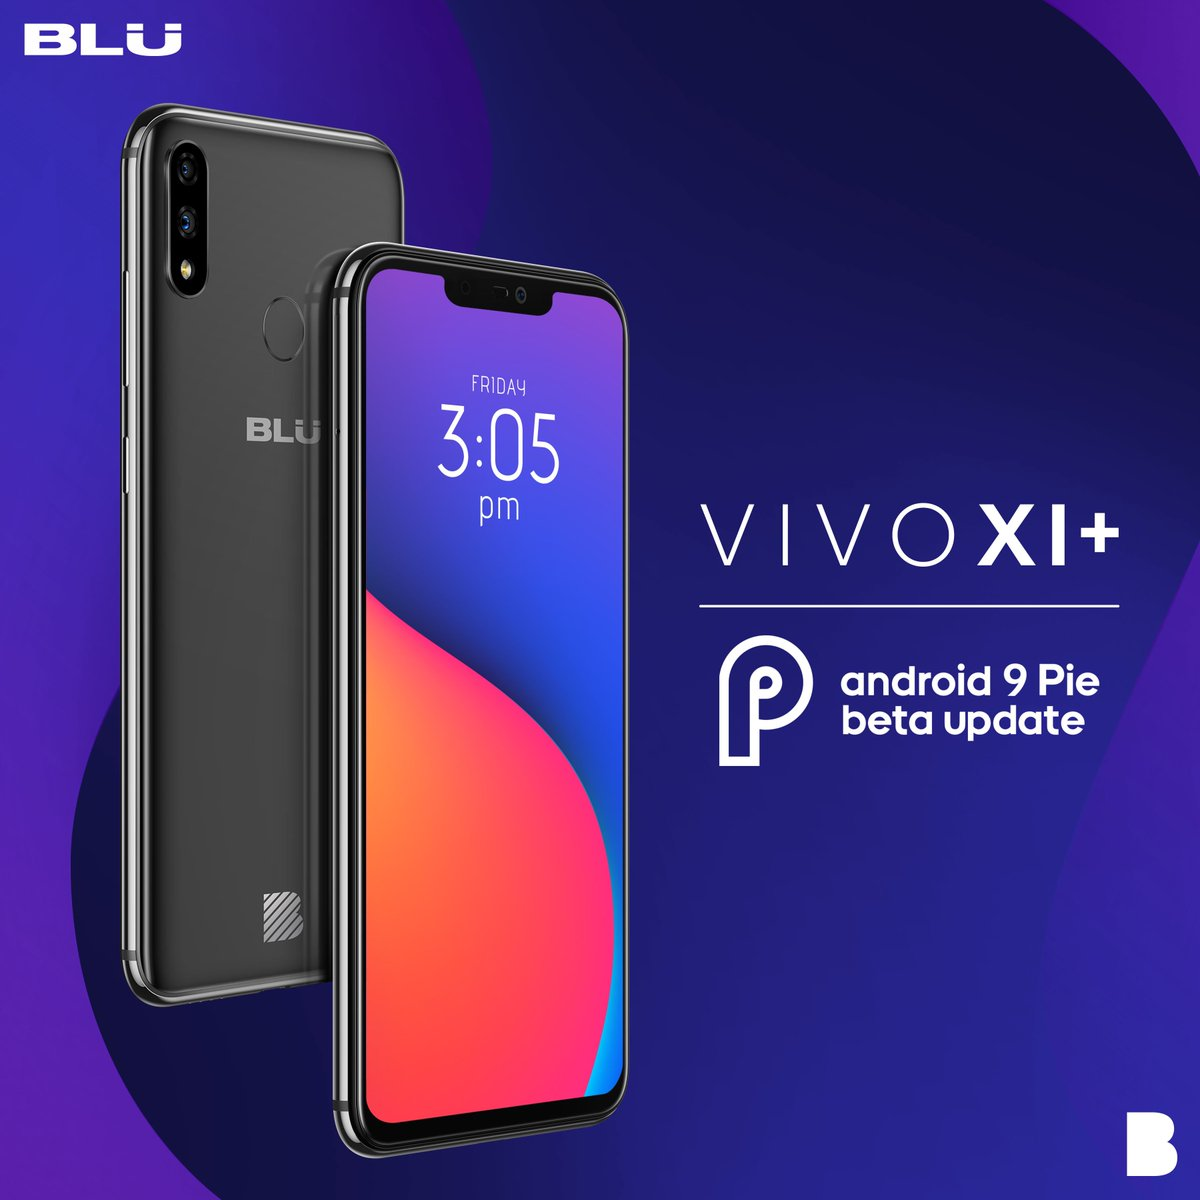 BLU Products on Twitter: